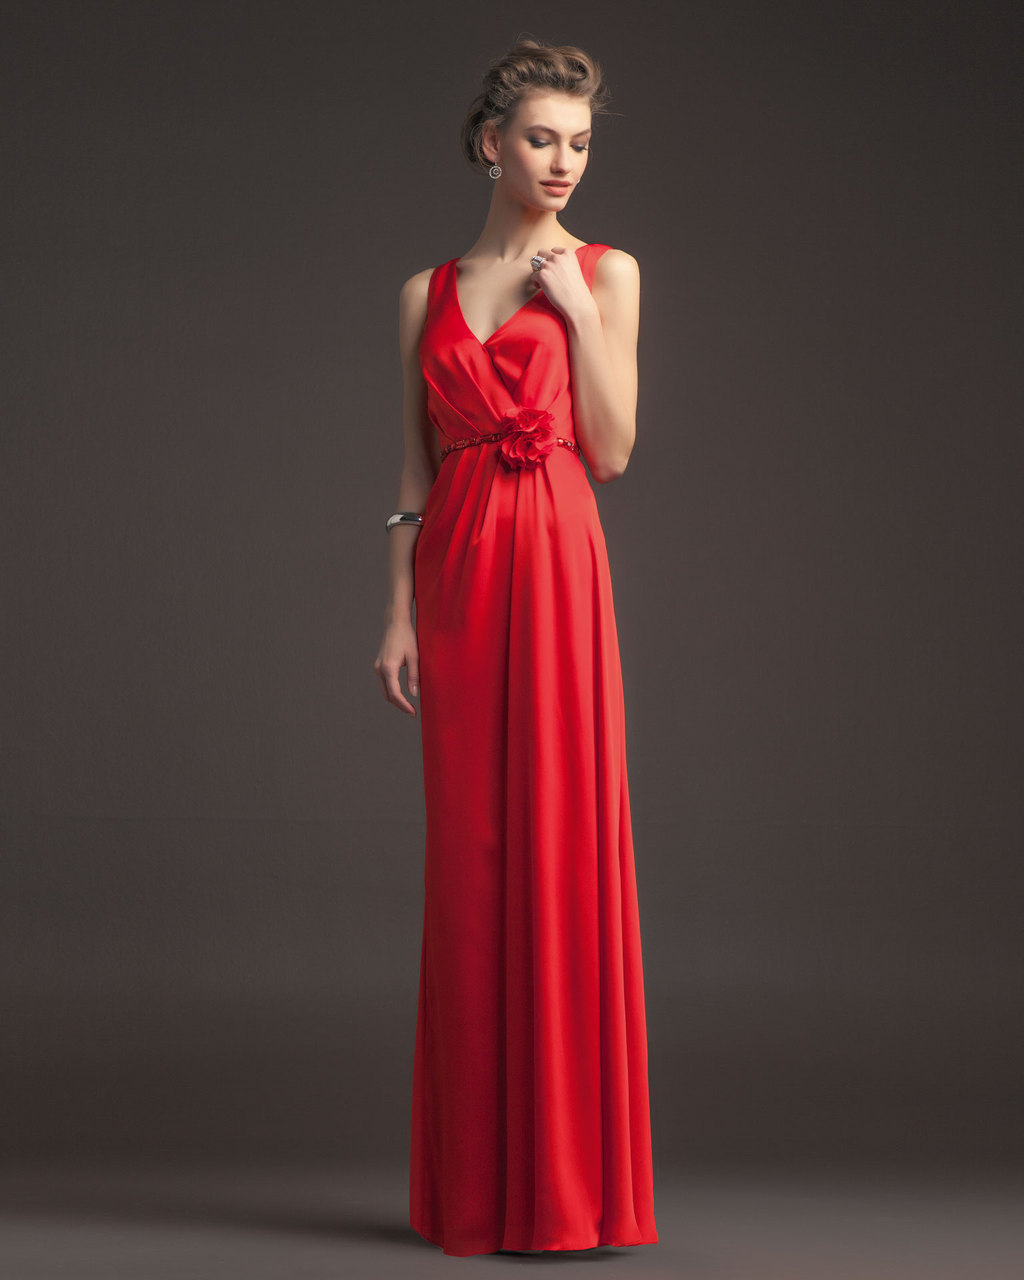 Gorgeous-2014-bridesmaid-dresses-from-aire-barcelona-vintage-red-silk-v-neck.full